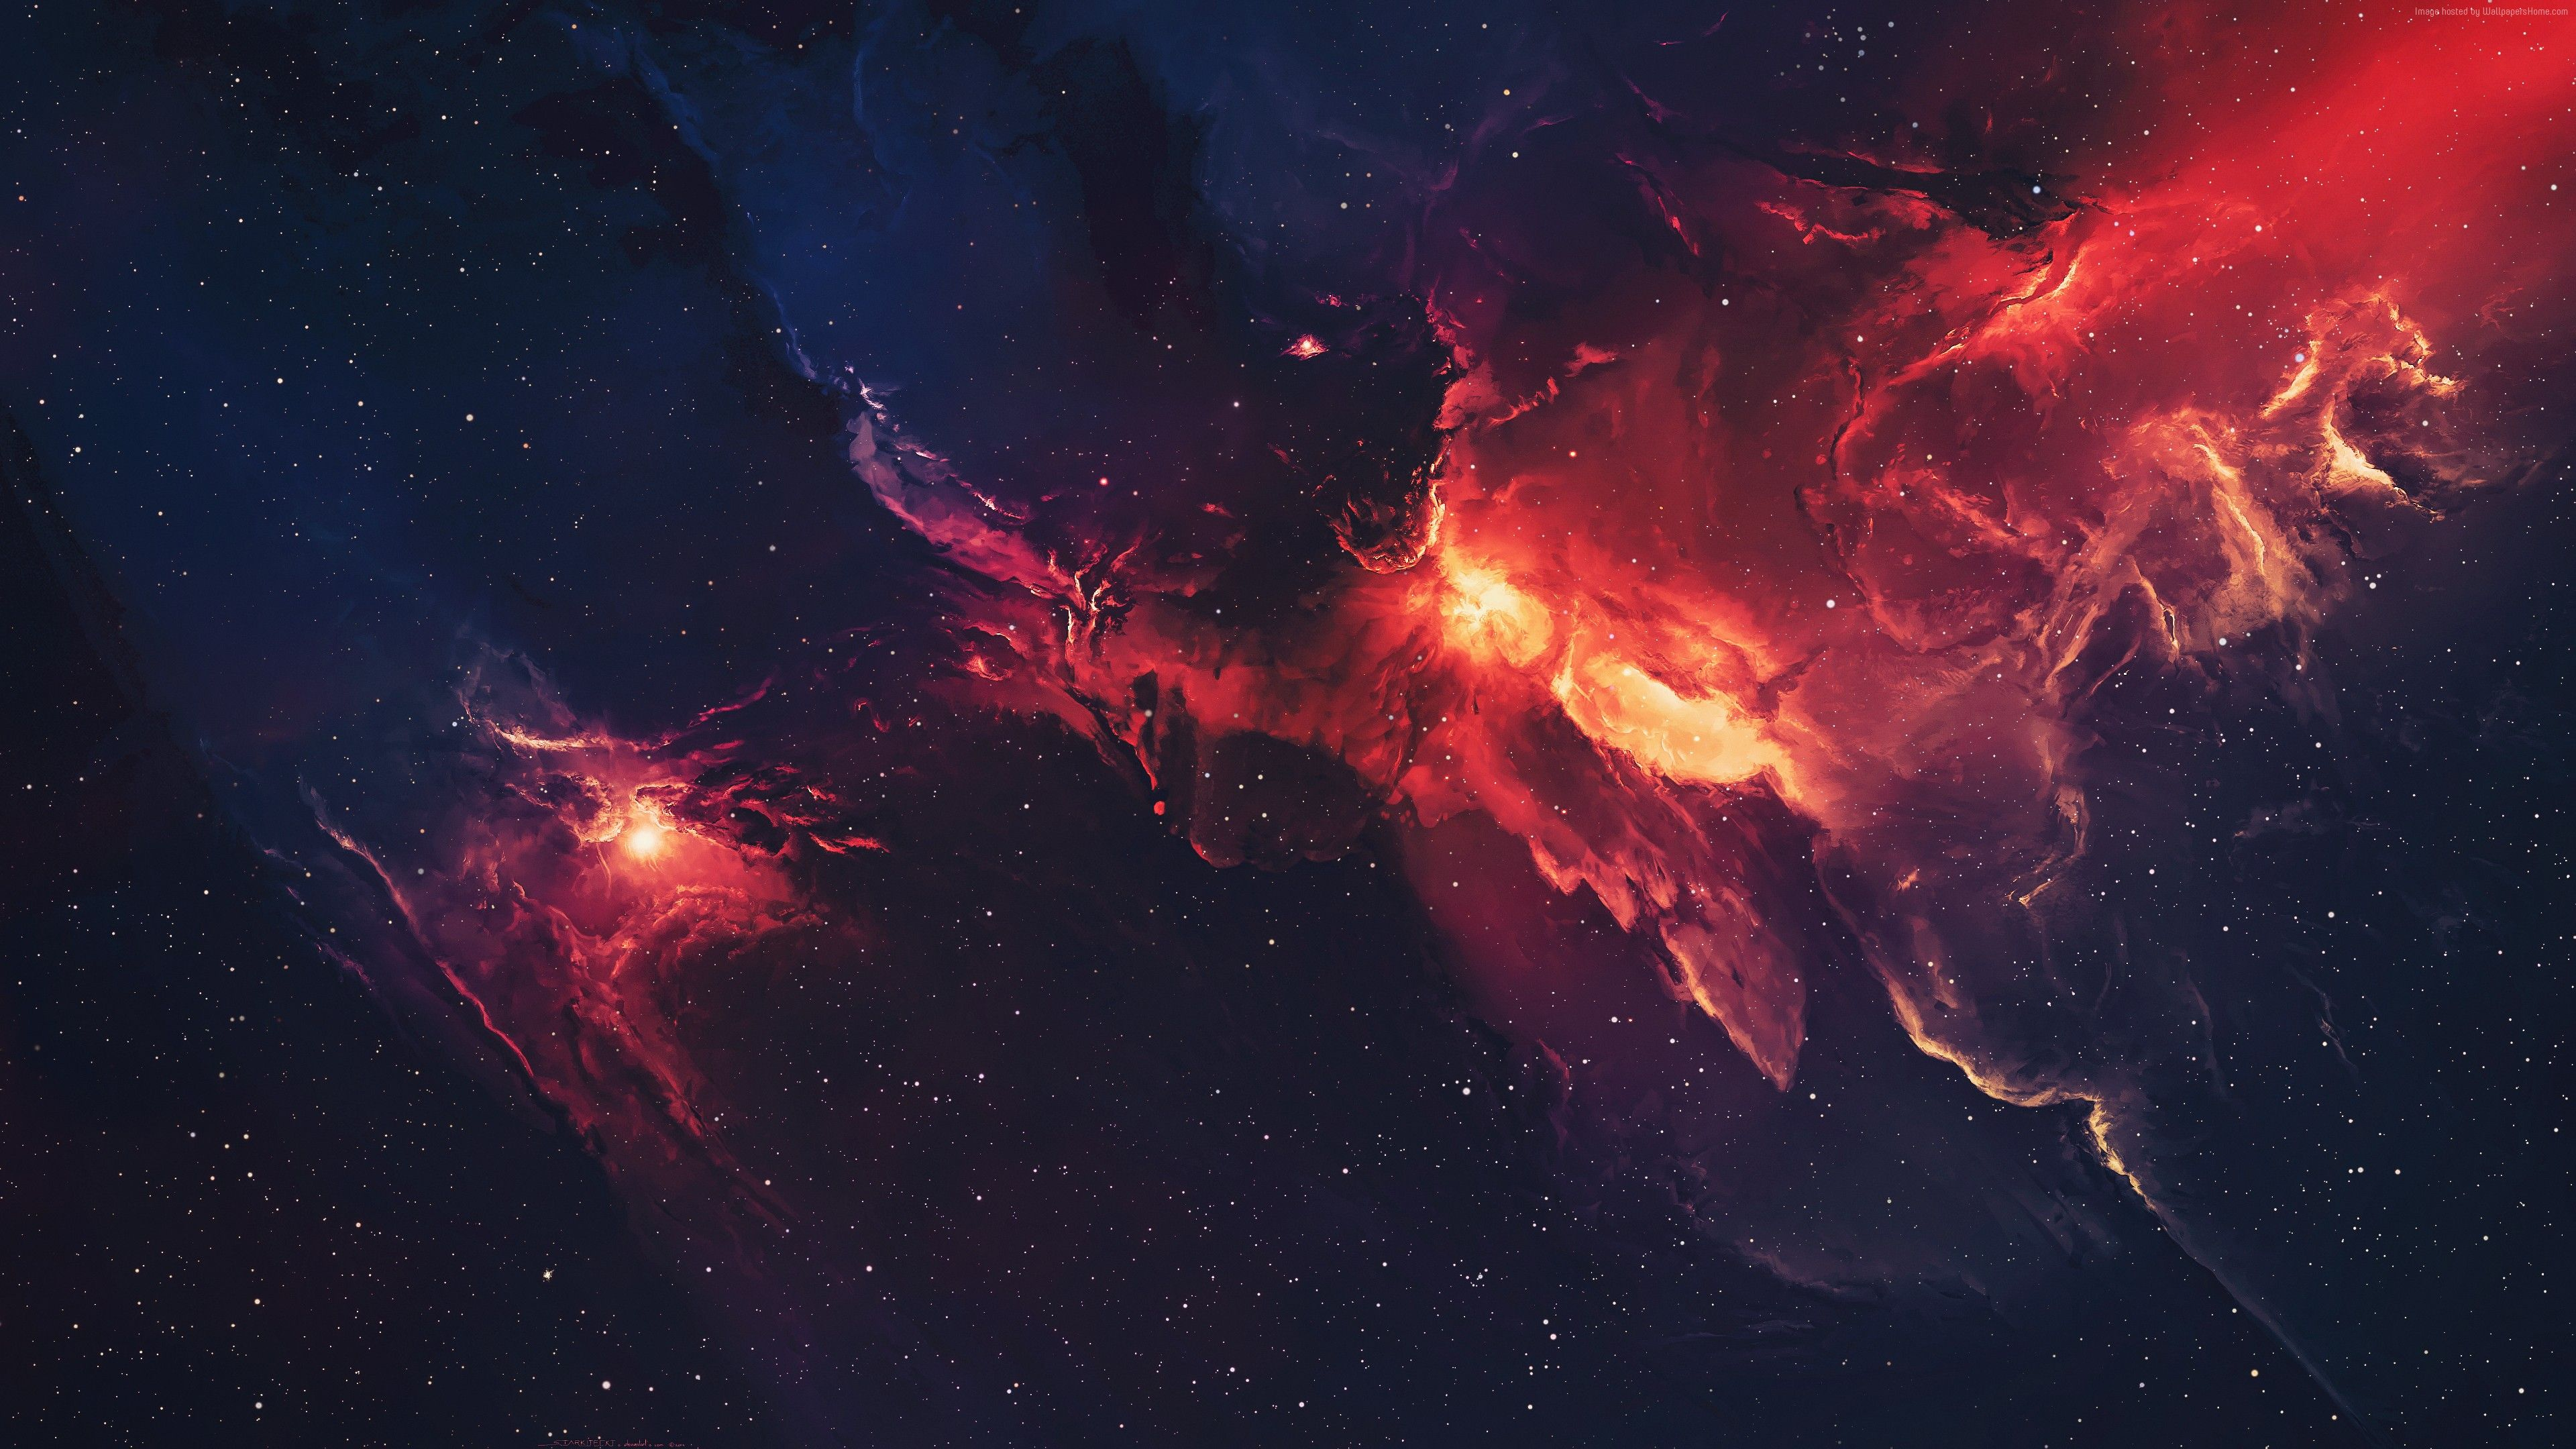 Wallpaper Galaxy Space 4k Art Https Www Pxwall Com Wallpaper Galaxy Space 4k Art Nebula Wallpaper Galaxy Wallpaper Nebula